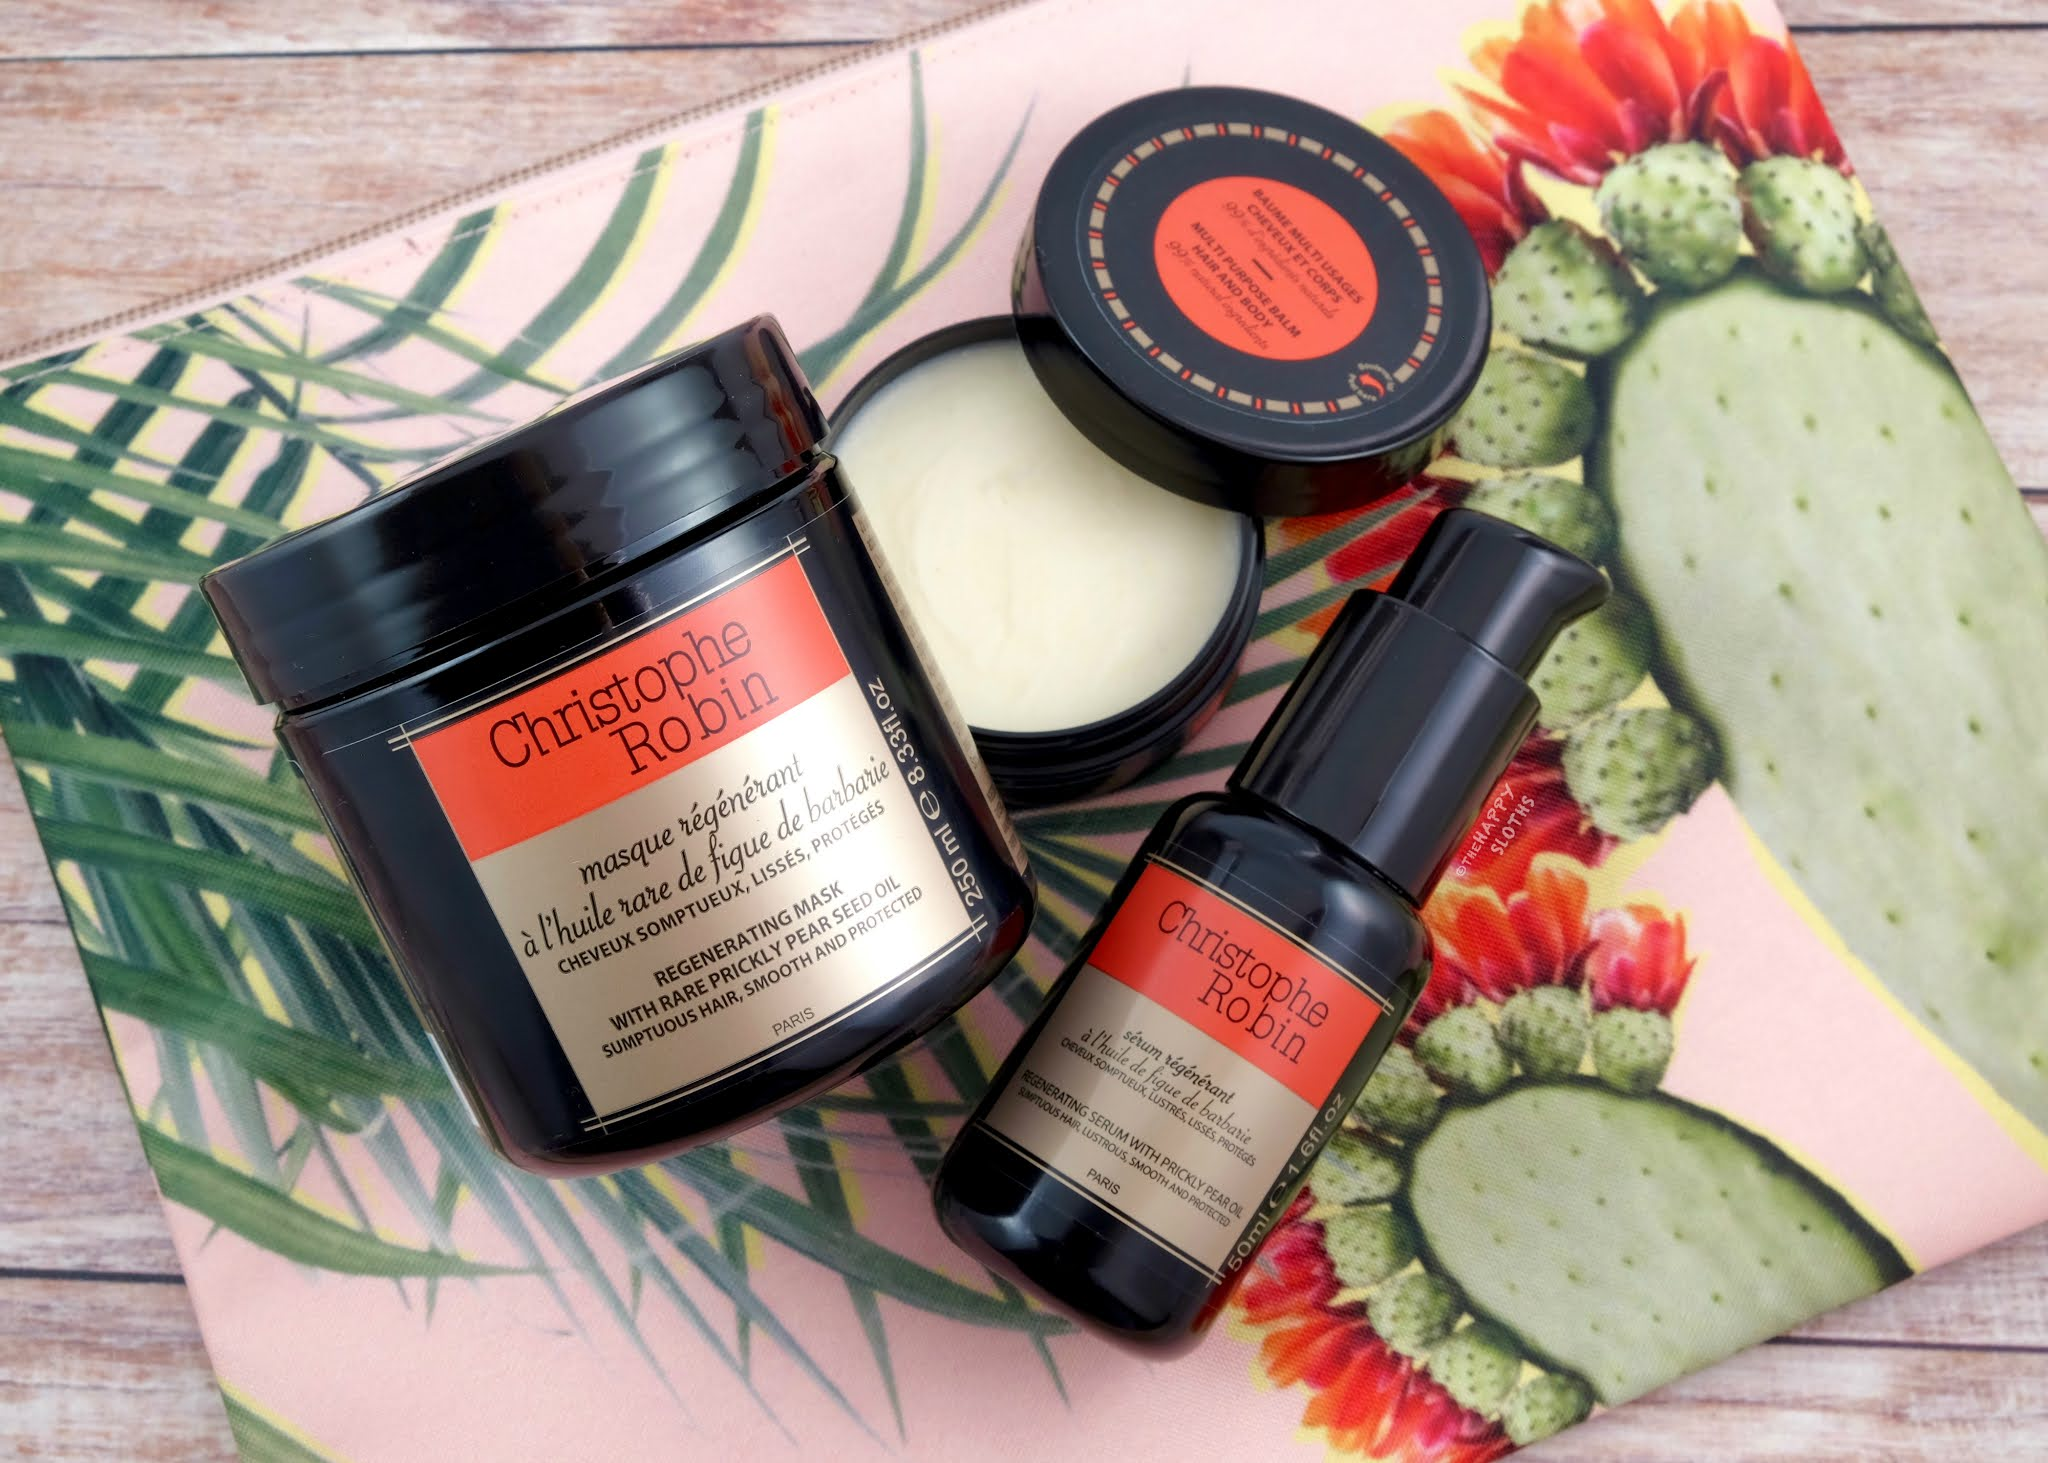 Christophe Robin | Regenerating Hair Mask with Prickly Pear Seed Oil, Regenerating Hair Serum & Multipurpose Regenerating Balm: Review